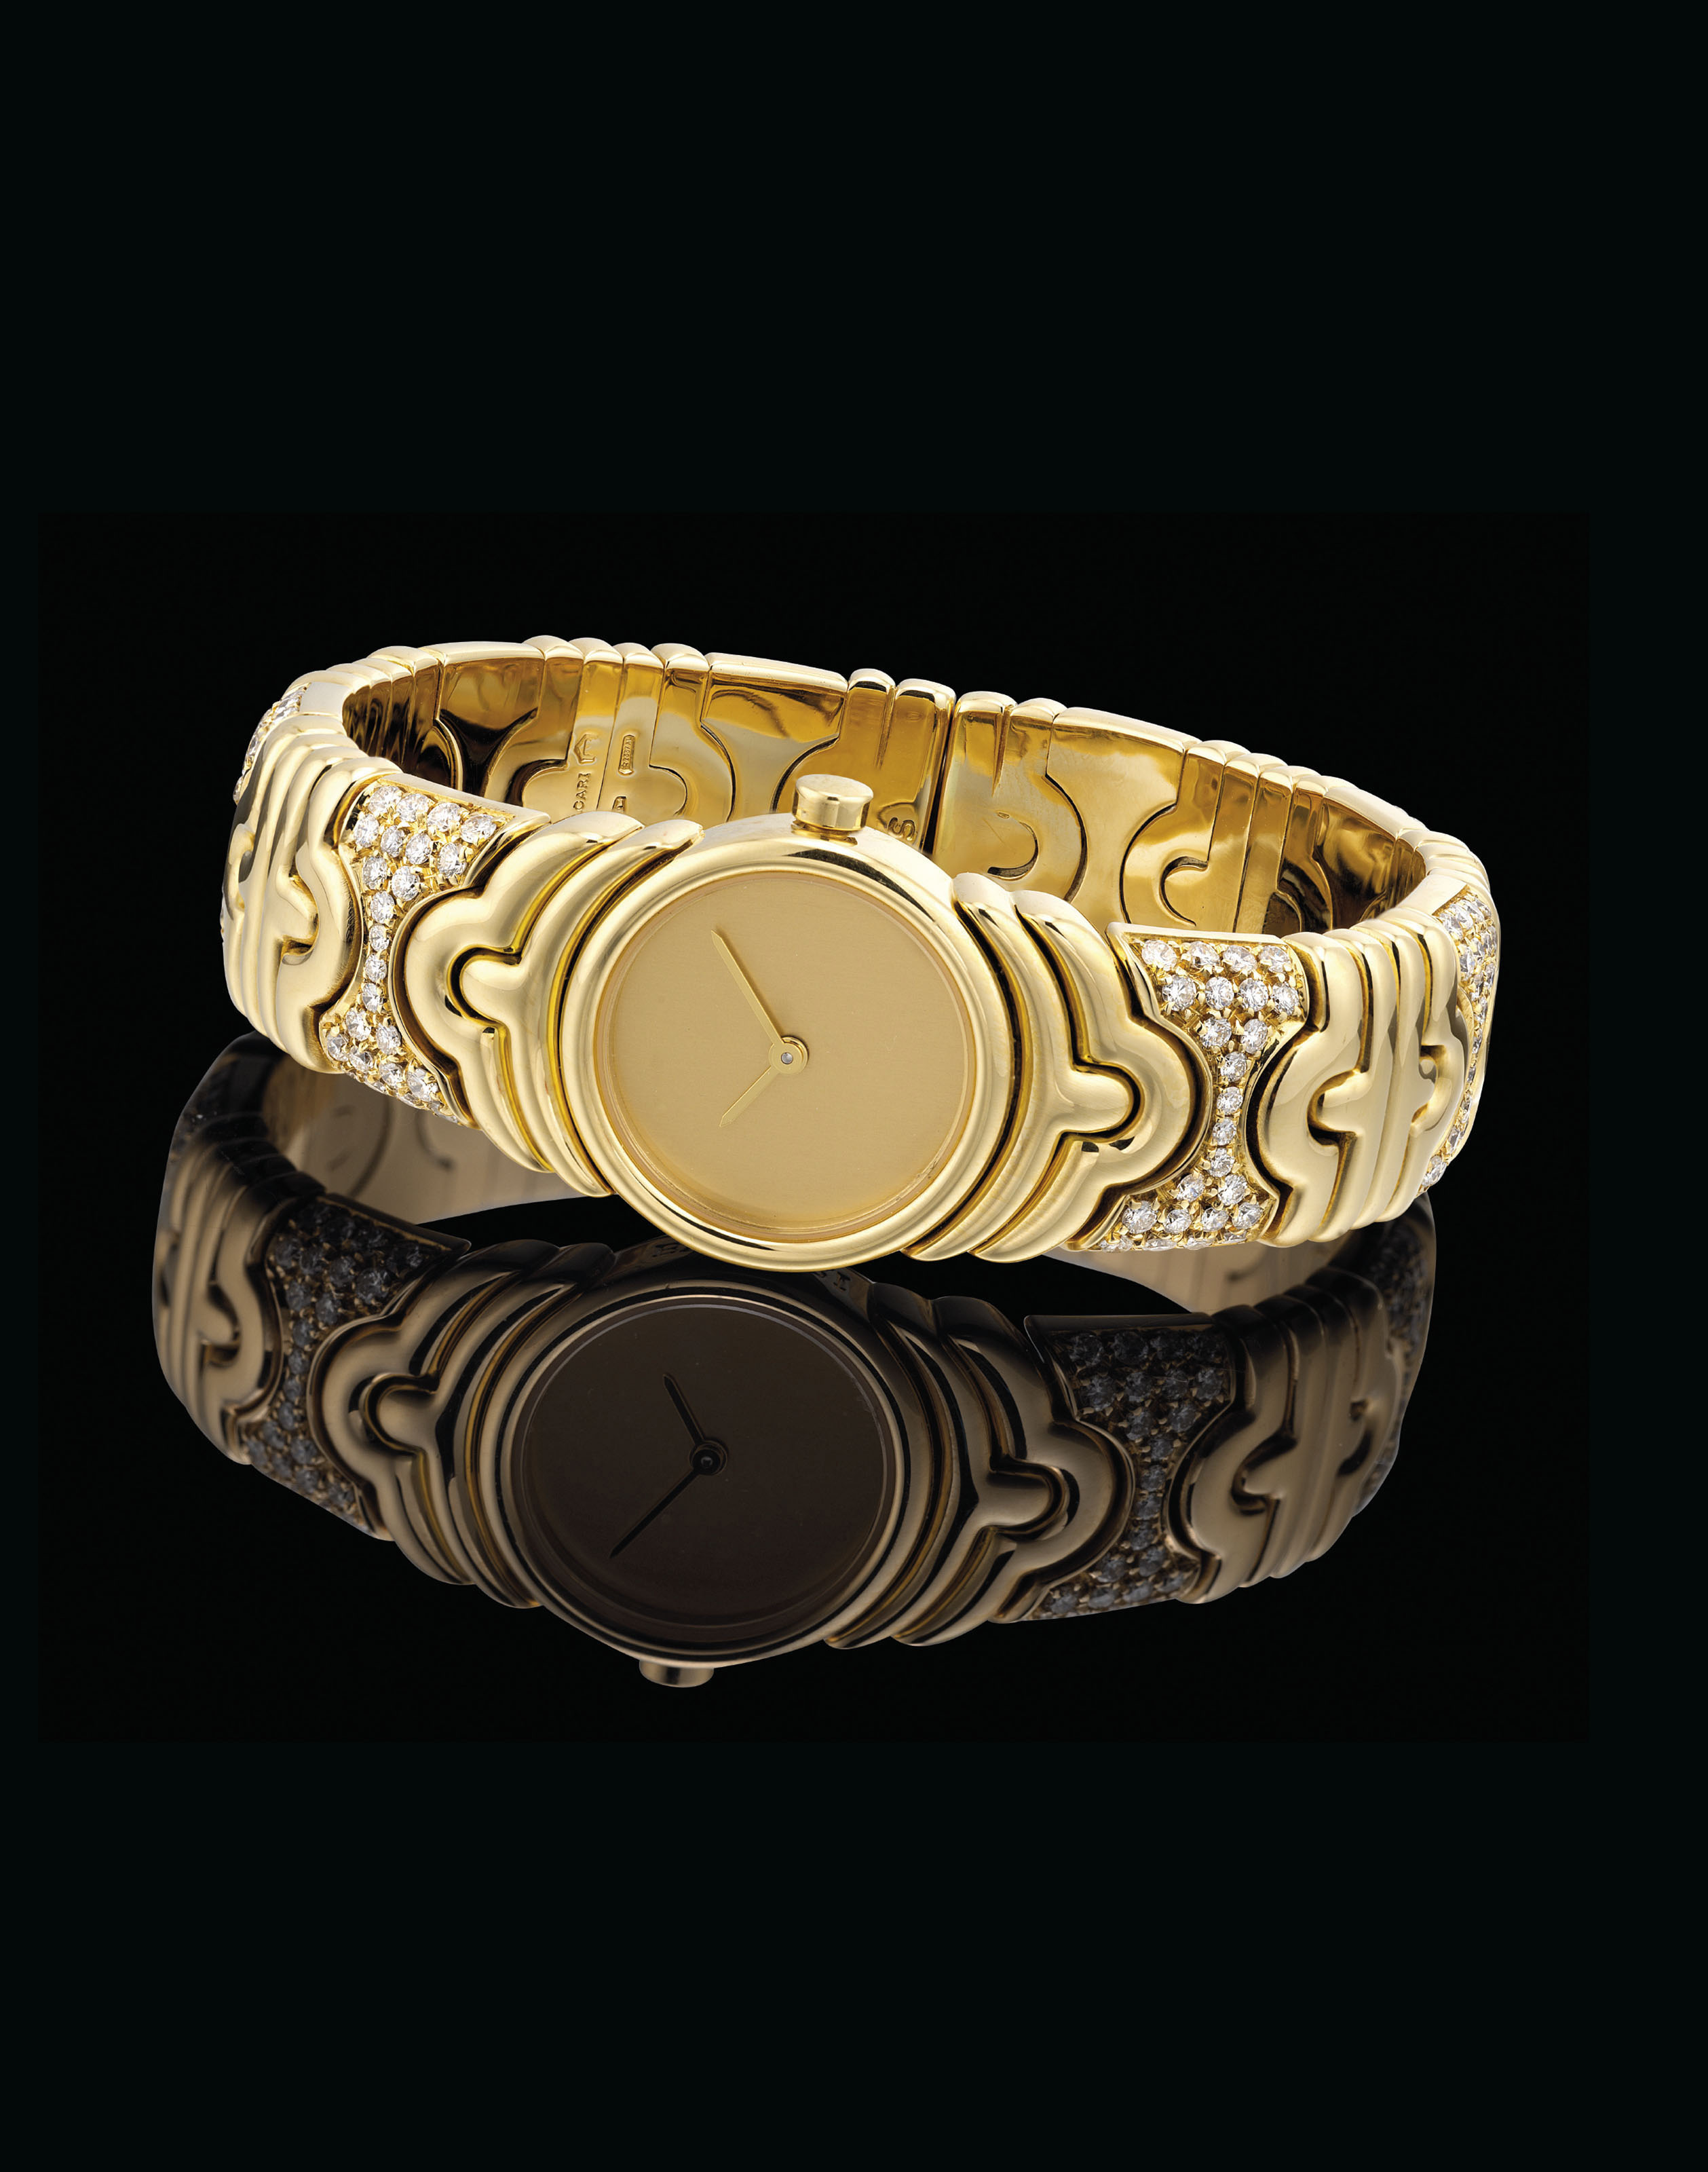 BULGARI. A LADY'S 18K GOLD AND